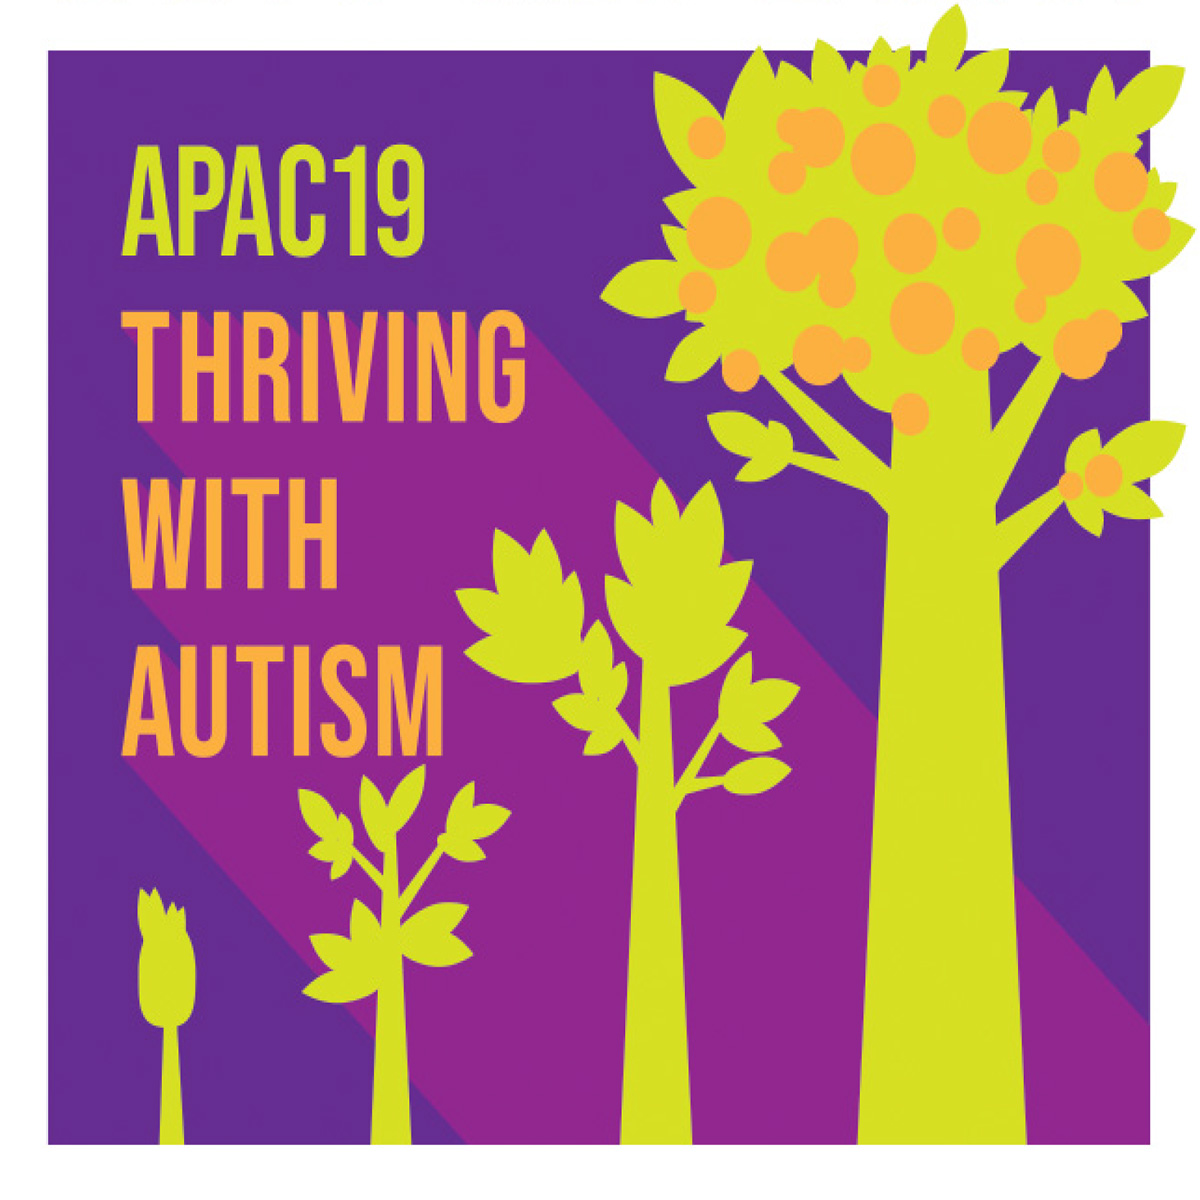 Speakers | Asia Pacific Autism Conference 2019